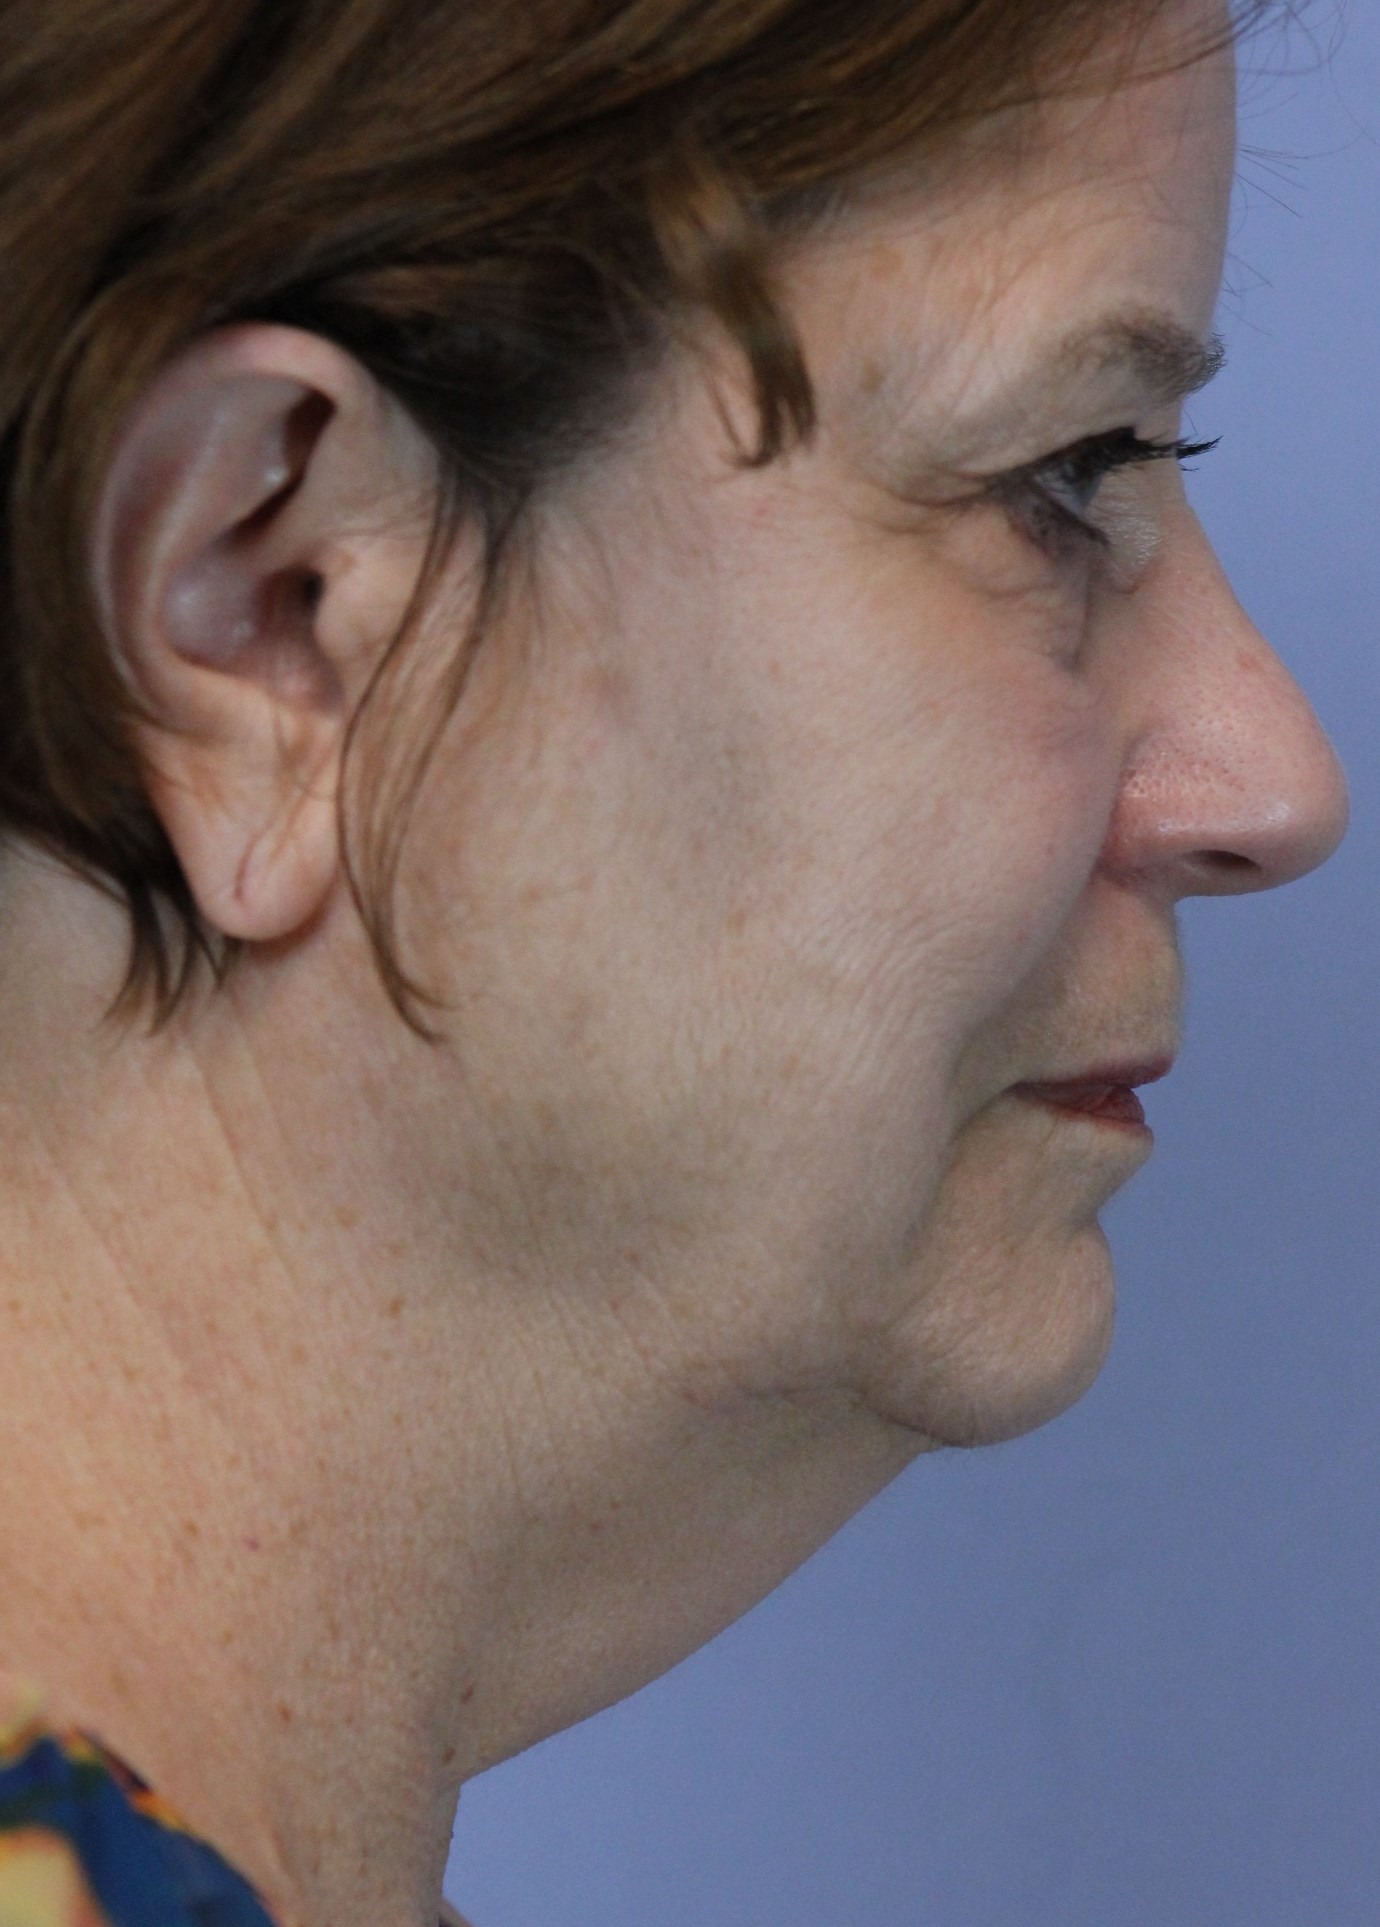 sagging-neck-before-surgery